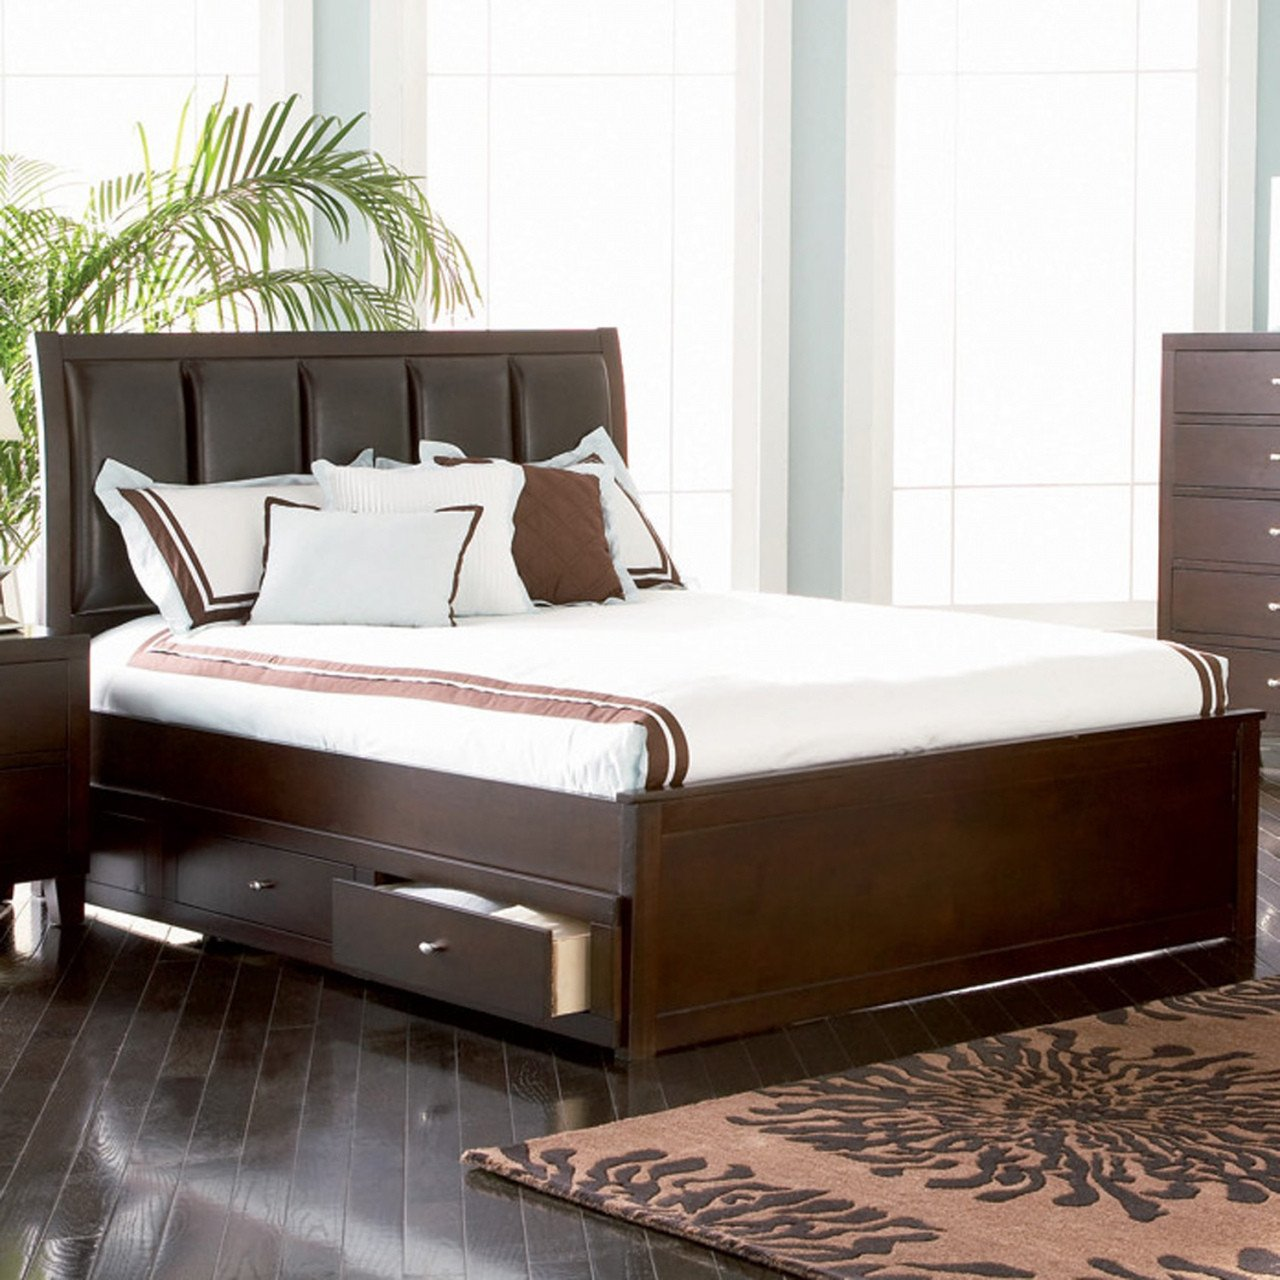 King Size Bedroom Ideas Lovely Modern King Size Bed — Procura Home Blog